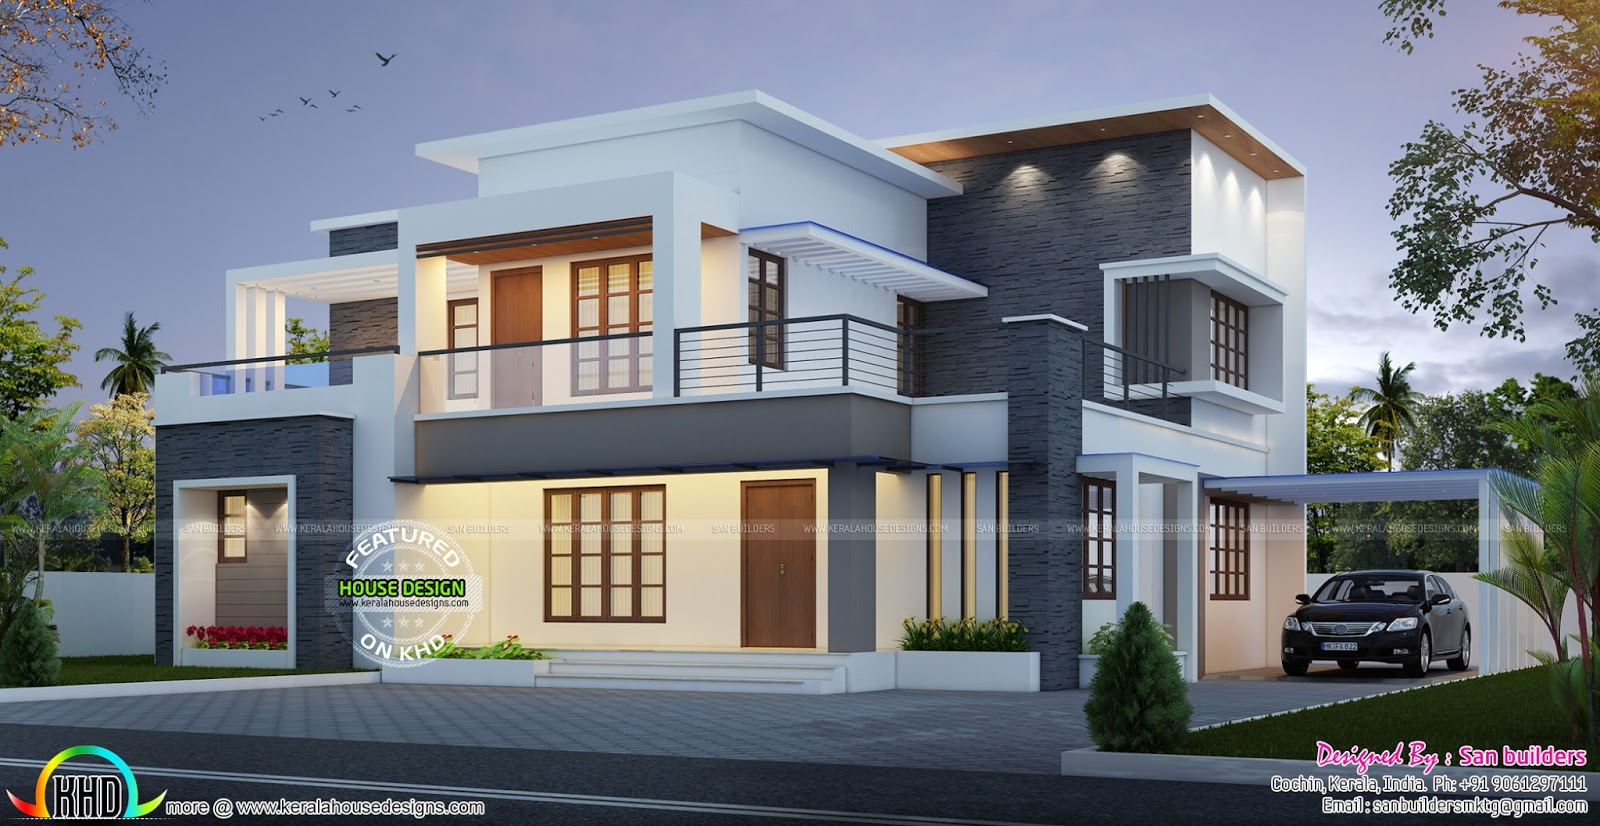 Ground Floor House Elevation Models : House plan and elevation by san builders kerala home